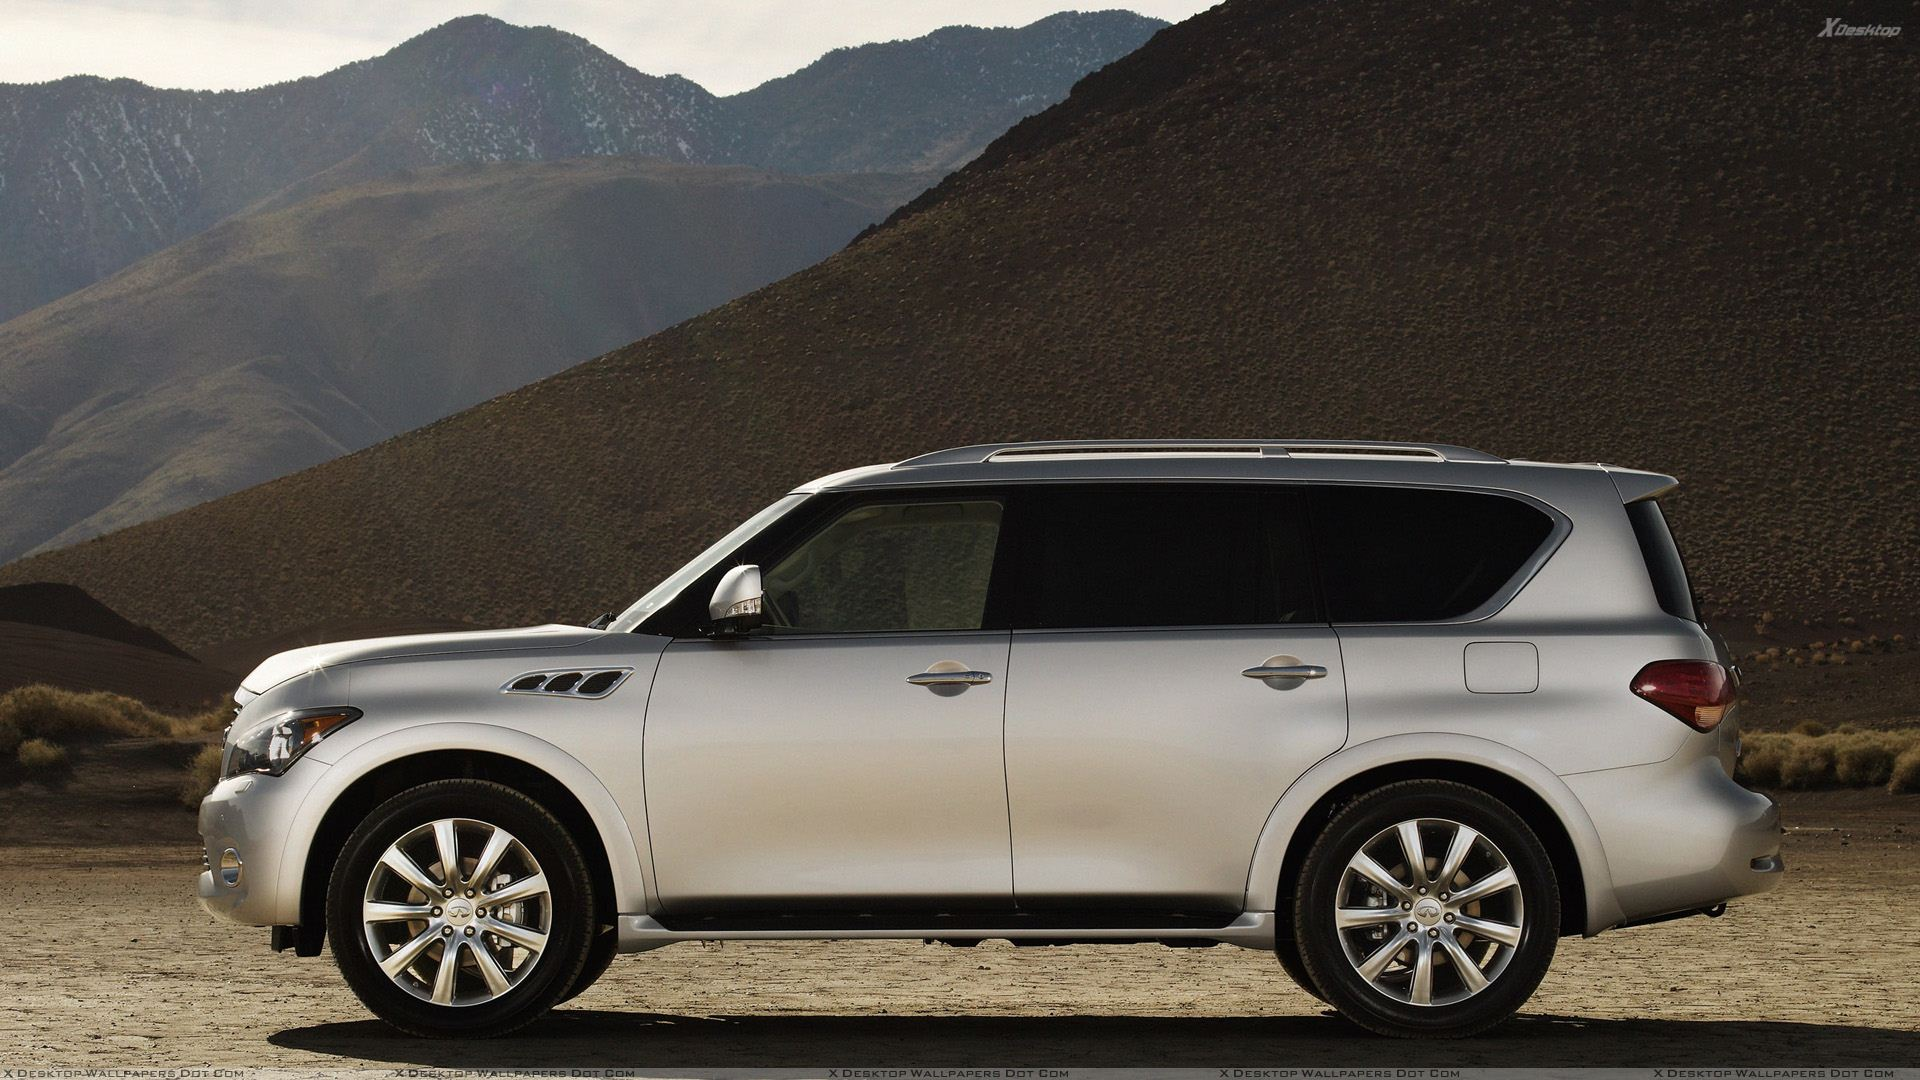 2011 infiniti qx56 in white side pose wallpaper side pose of 2011 infiniti qx56 in white near moutains vanachro Choice Image